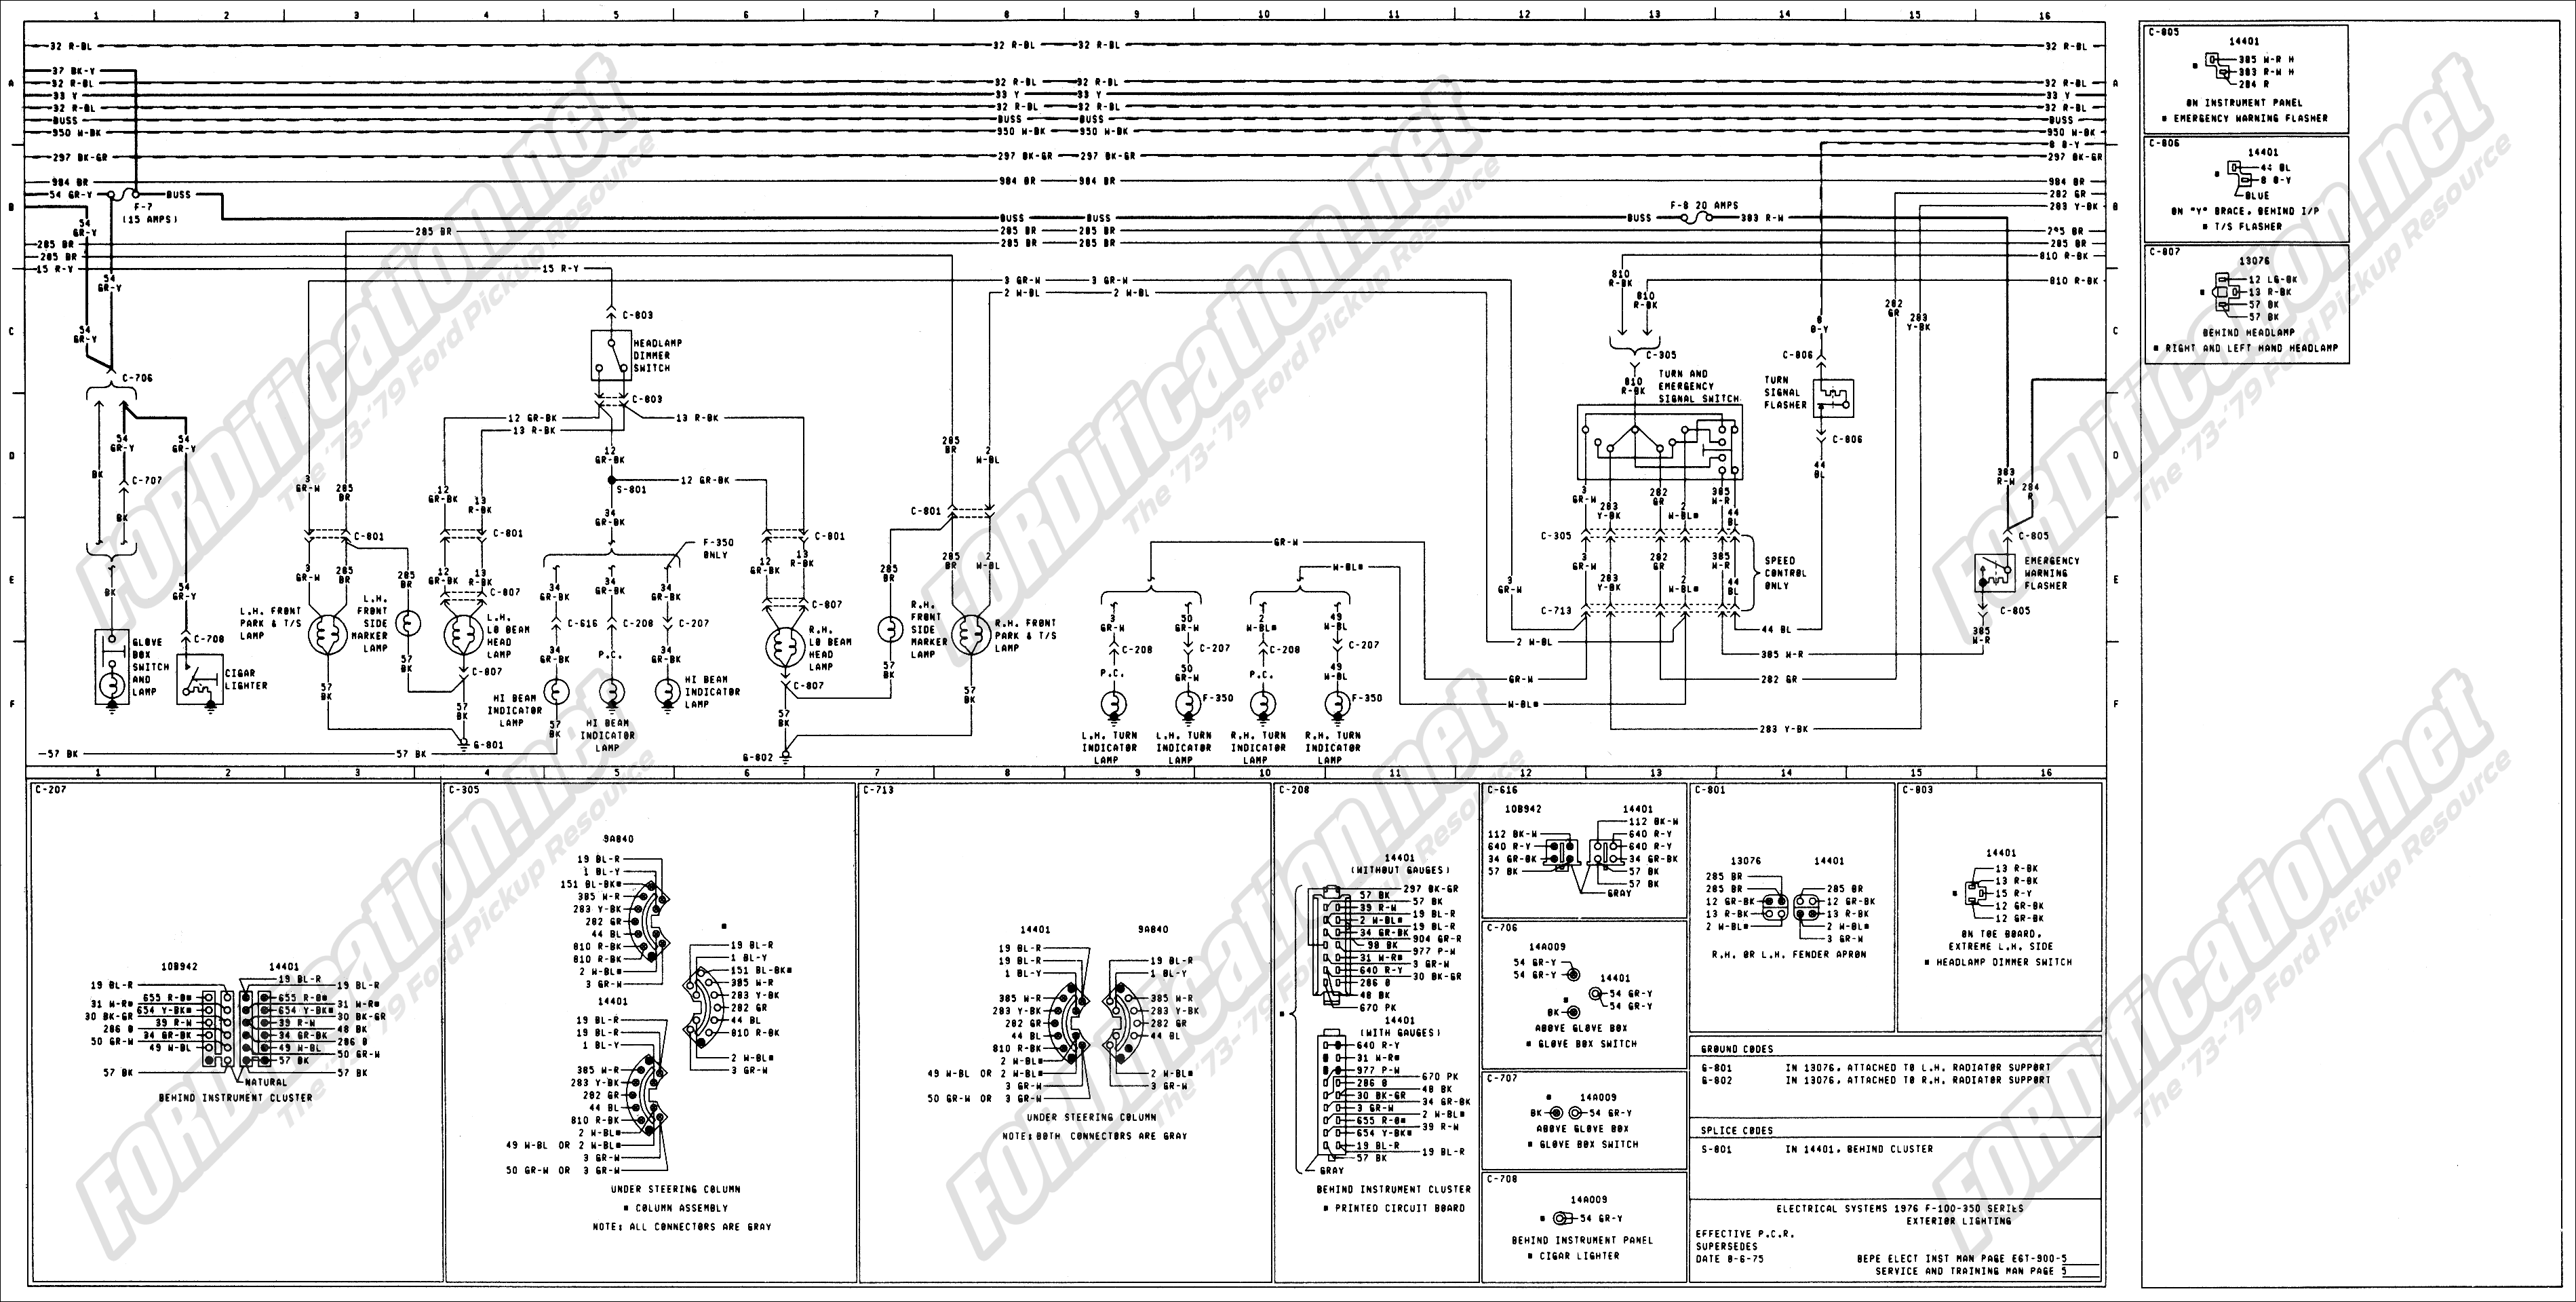 F350 Brake Light Wiring Diagram Archive Of Automotive Ford Ranger Tail 1977 Truck About Rh Medijagmbbs Com 2000 2002